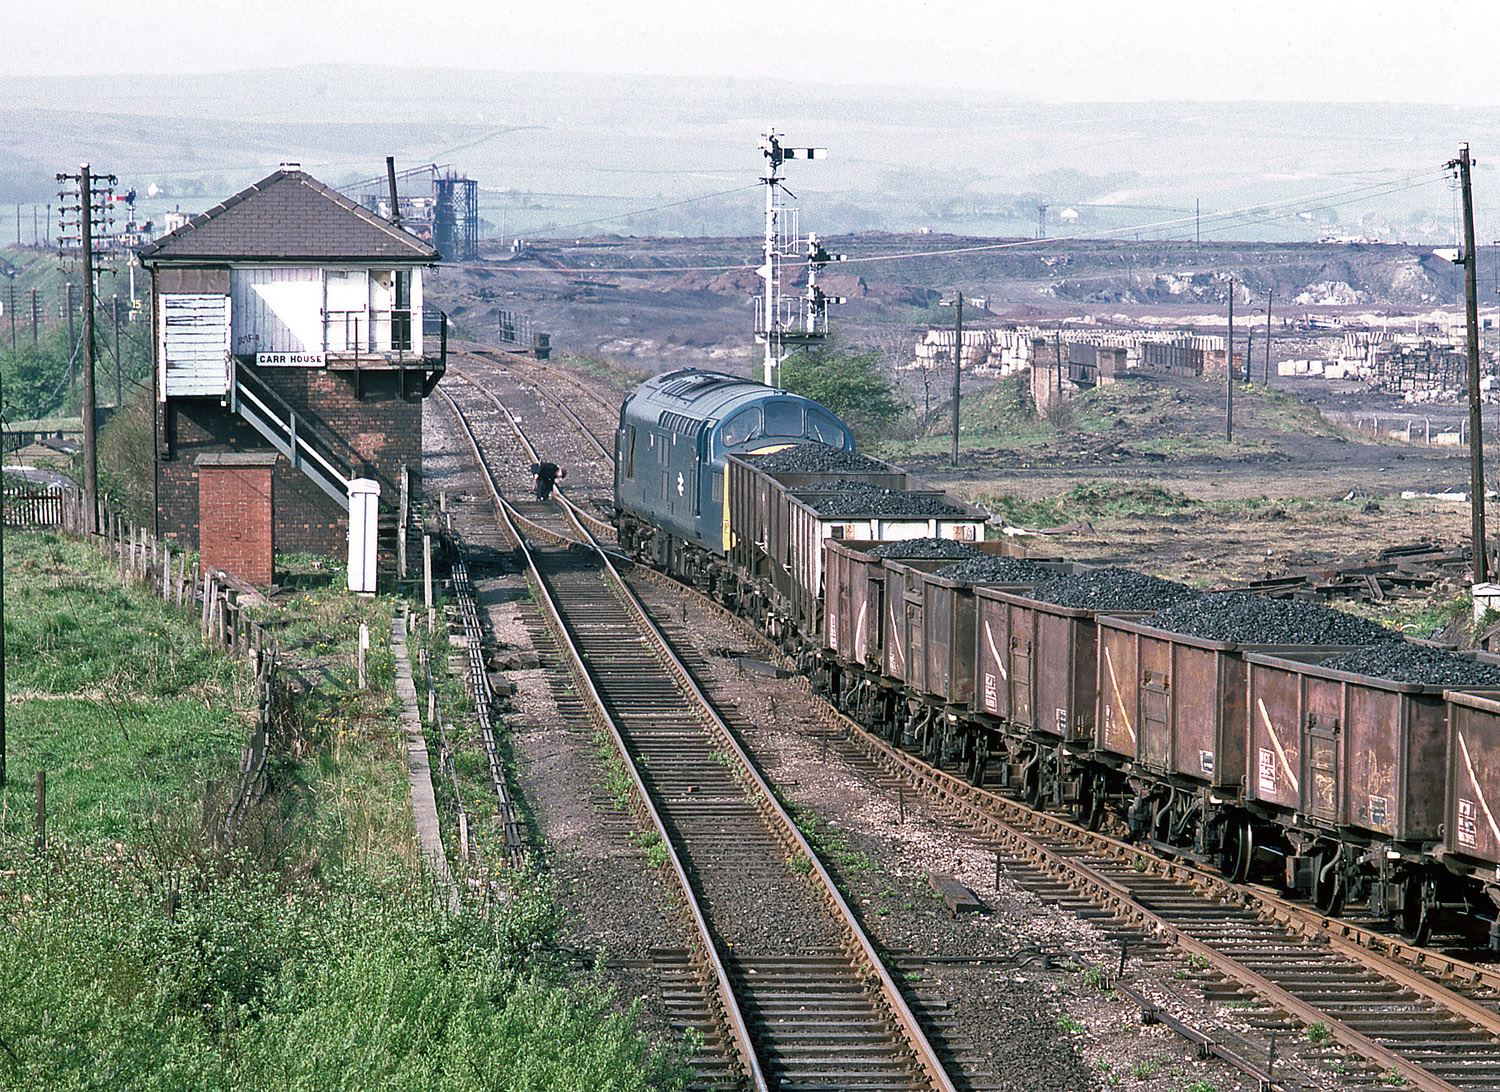 37094 again passes Carr House signal box on 10 May 1982 with a coal train made up of 21 and 16 tonne wagons. Photo copyright Stephen McGahon